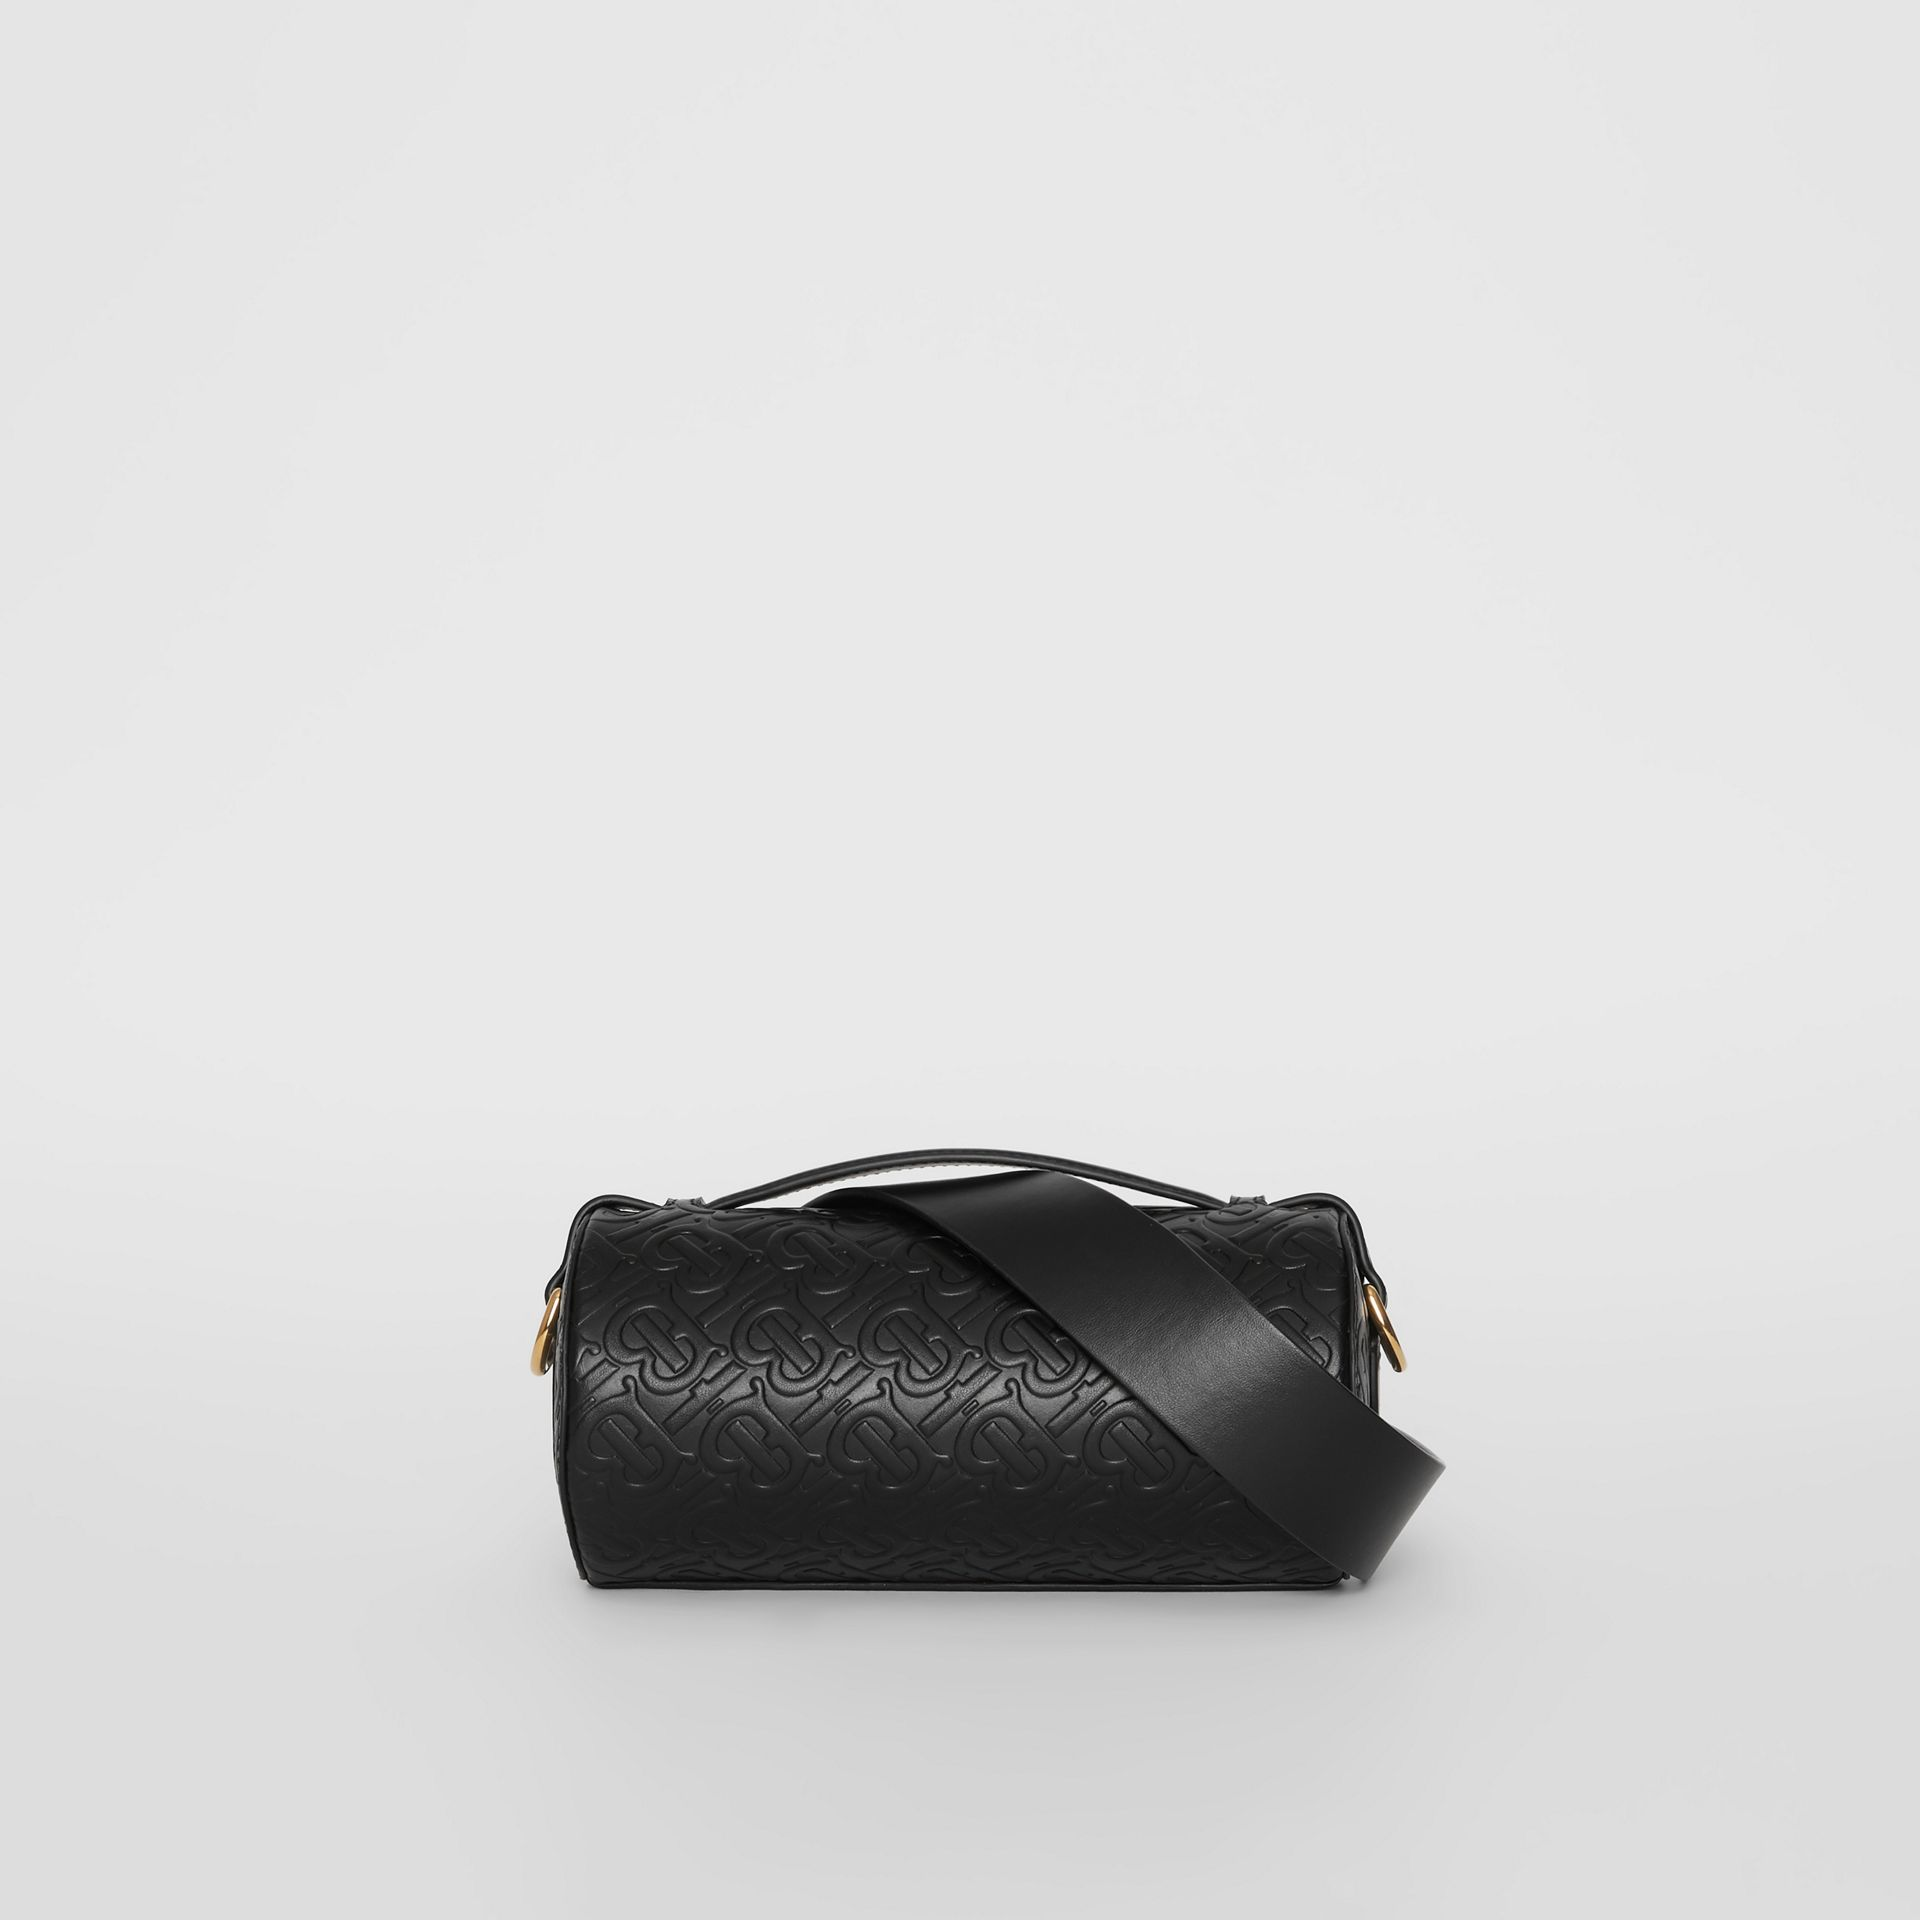 Sac The Barrel en cuir Monogram (Noir) - Femme | Burberry Canada - photo de la galerie 7